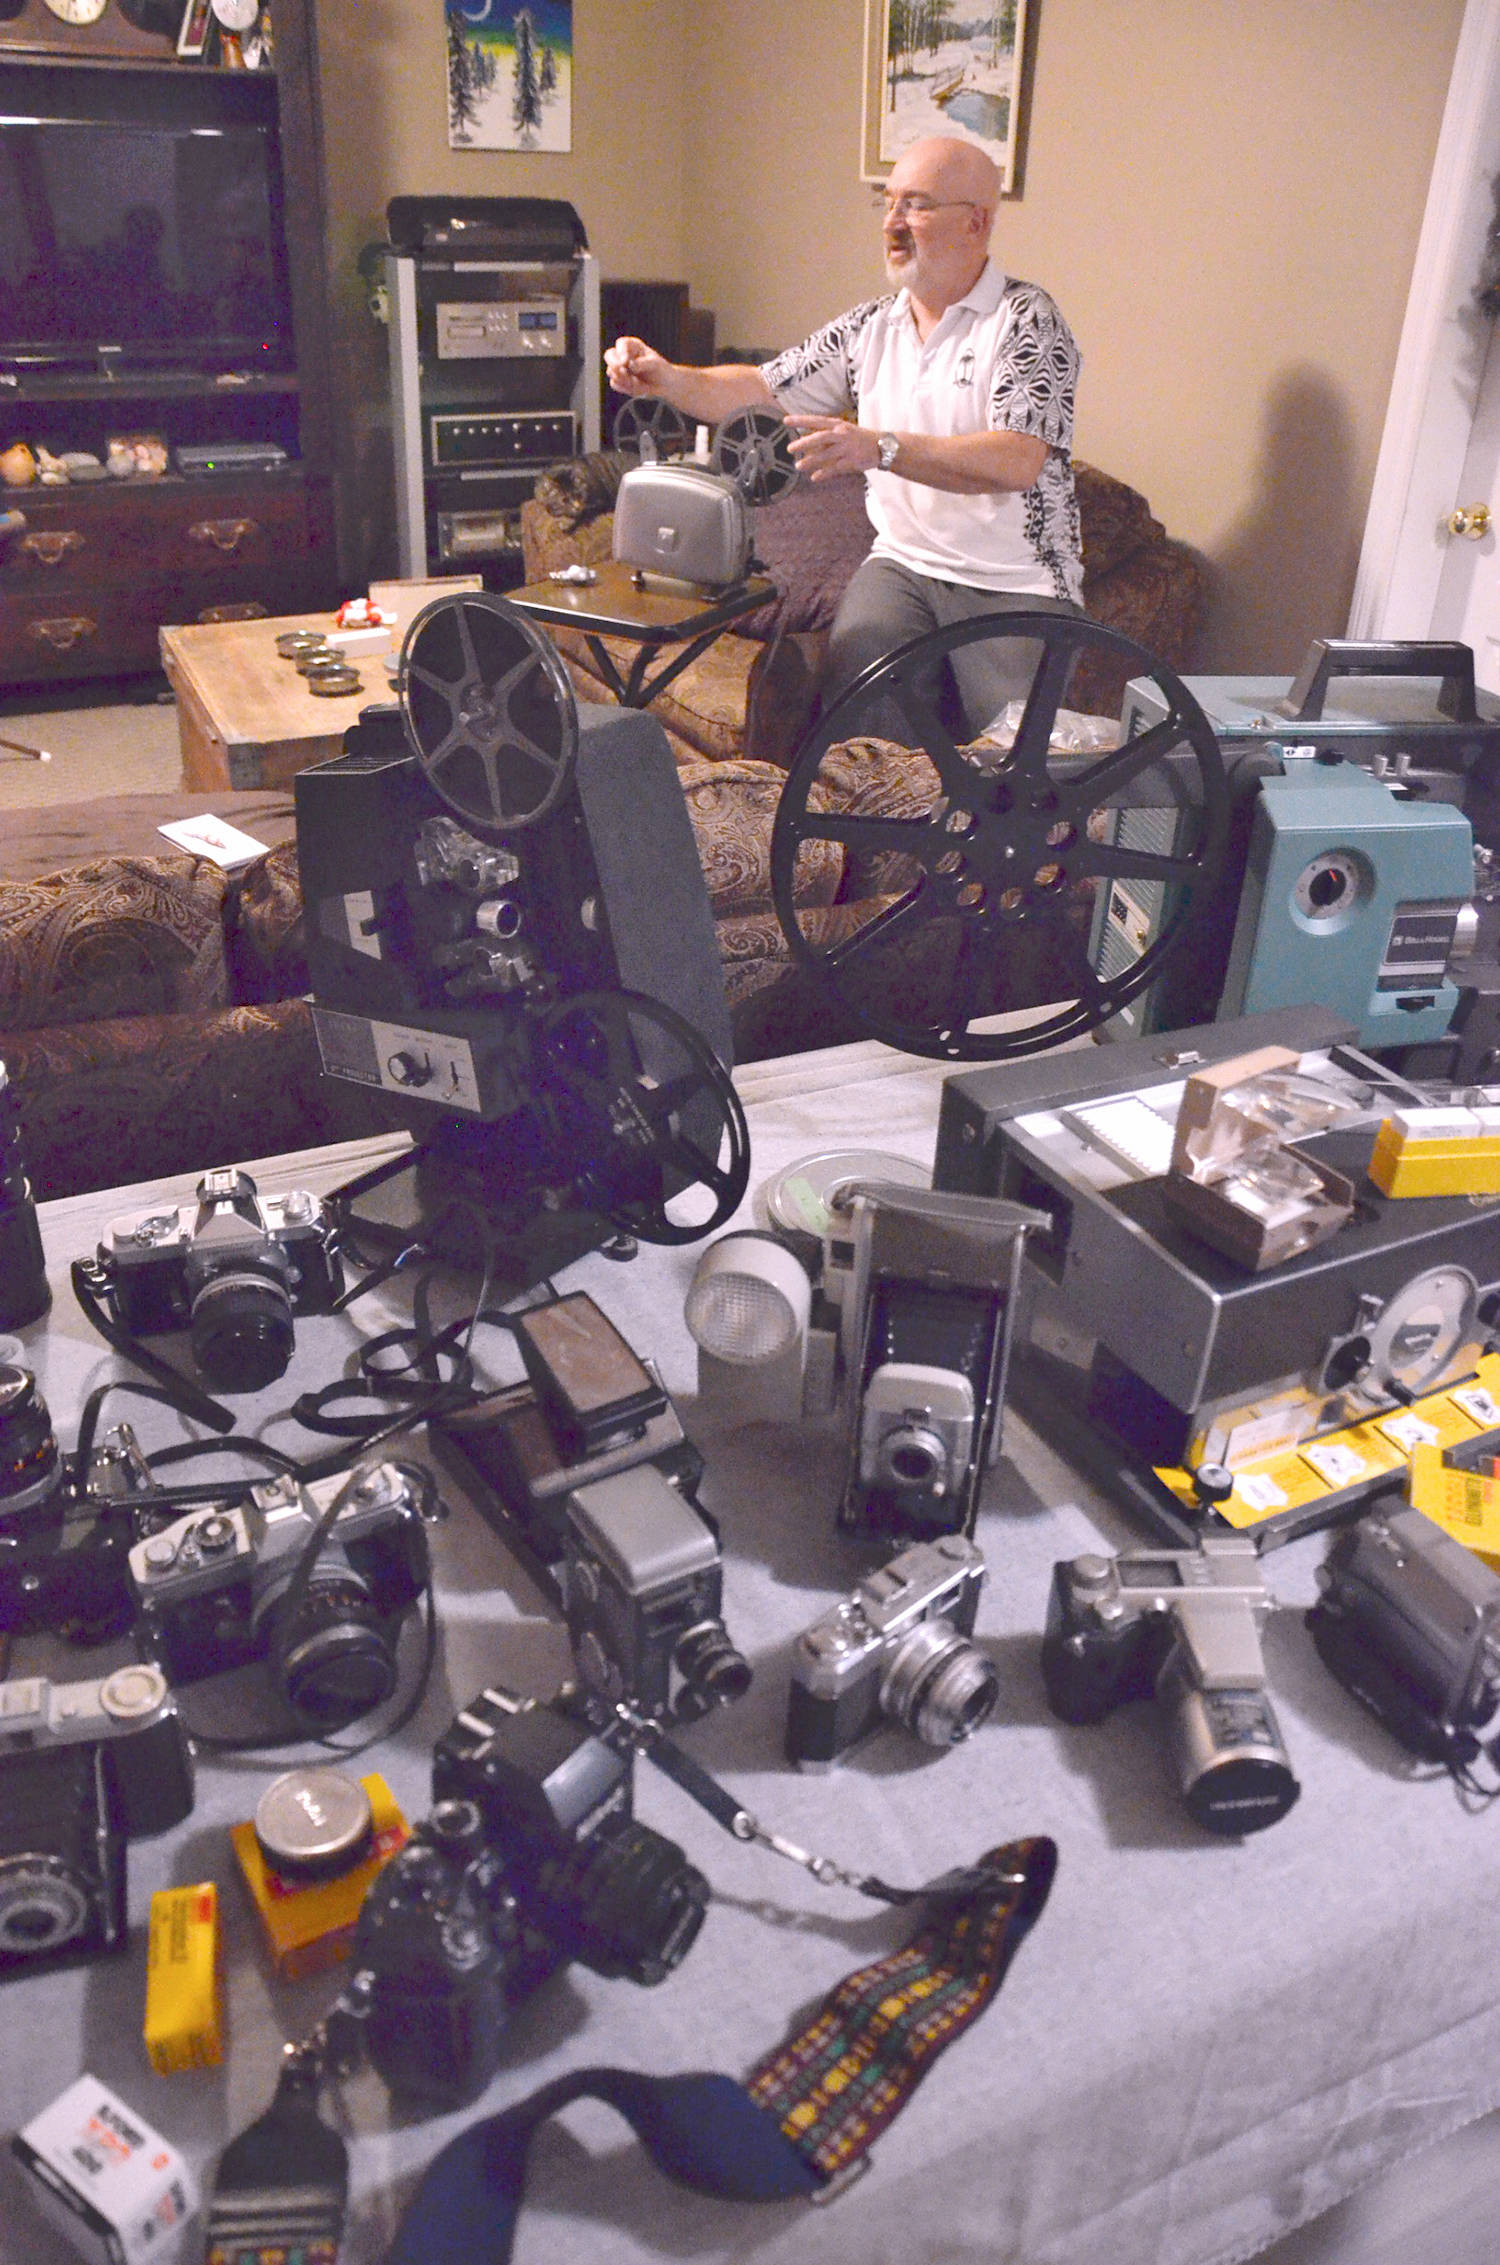 Mike Burgher's collecting has led him to find old slides, photos and home movies at thrift shops, garage sales and flea markets. Recently a thrift store purchase included a video of a baby's first year of life, and he was able to connect with the original owner. (Heather Colpitts/Langley Advance Times)